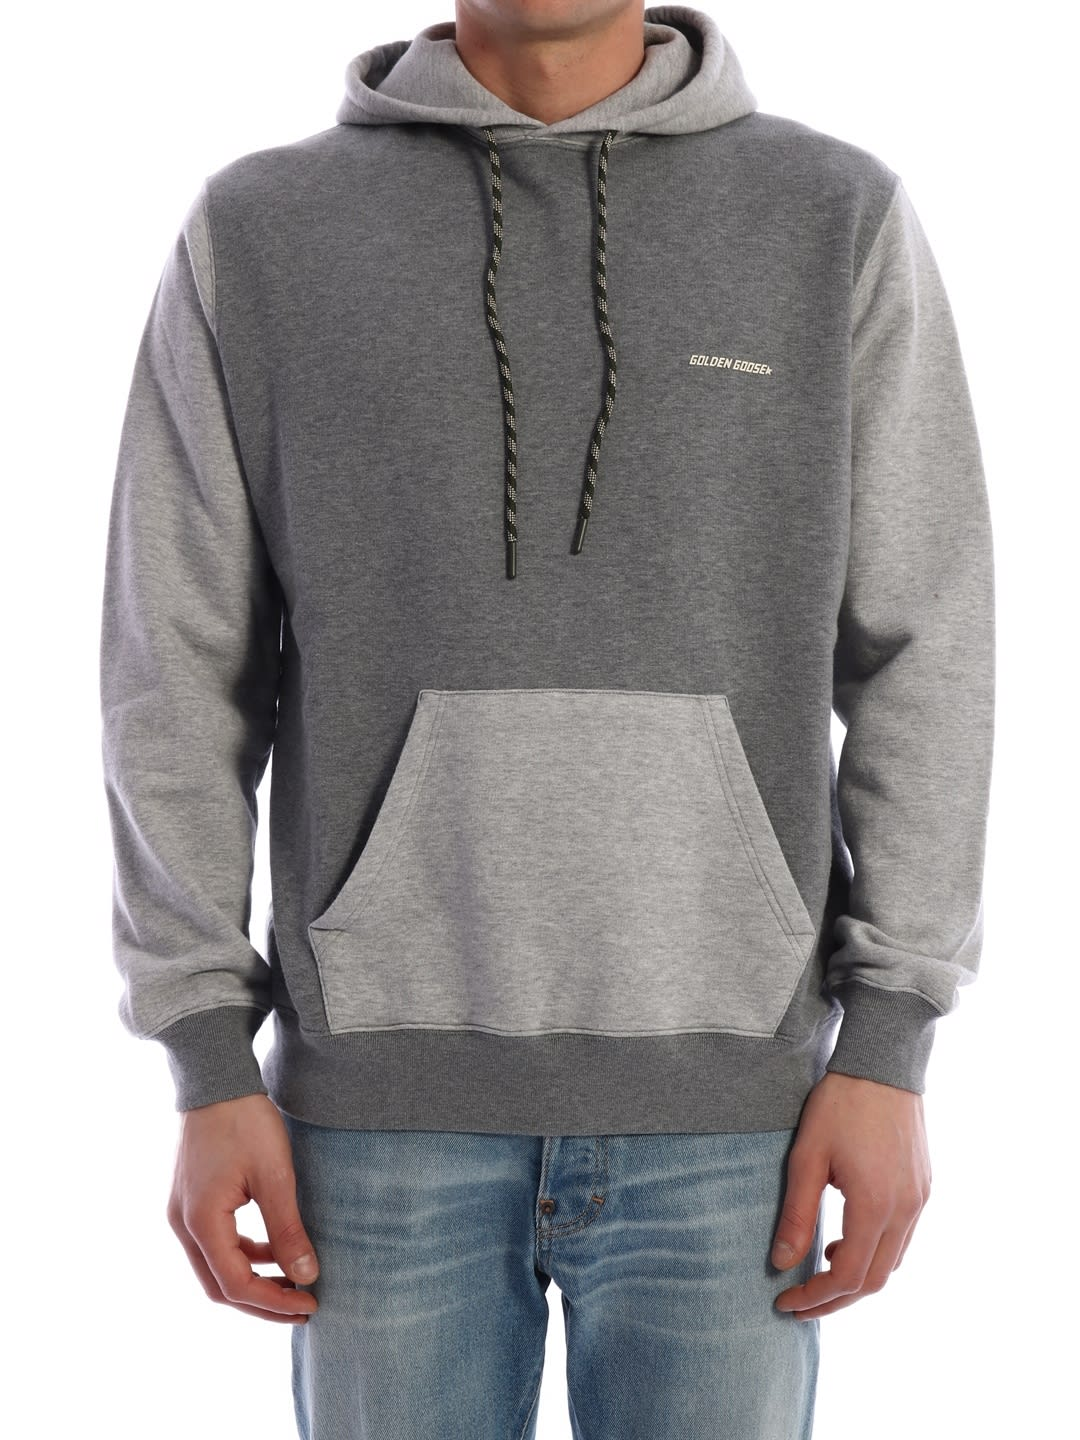 Two-tone gray cotton hoodie with kangaroo pocket. The model is 183 tall and wears size MComposition: 100% Cotton